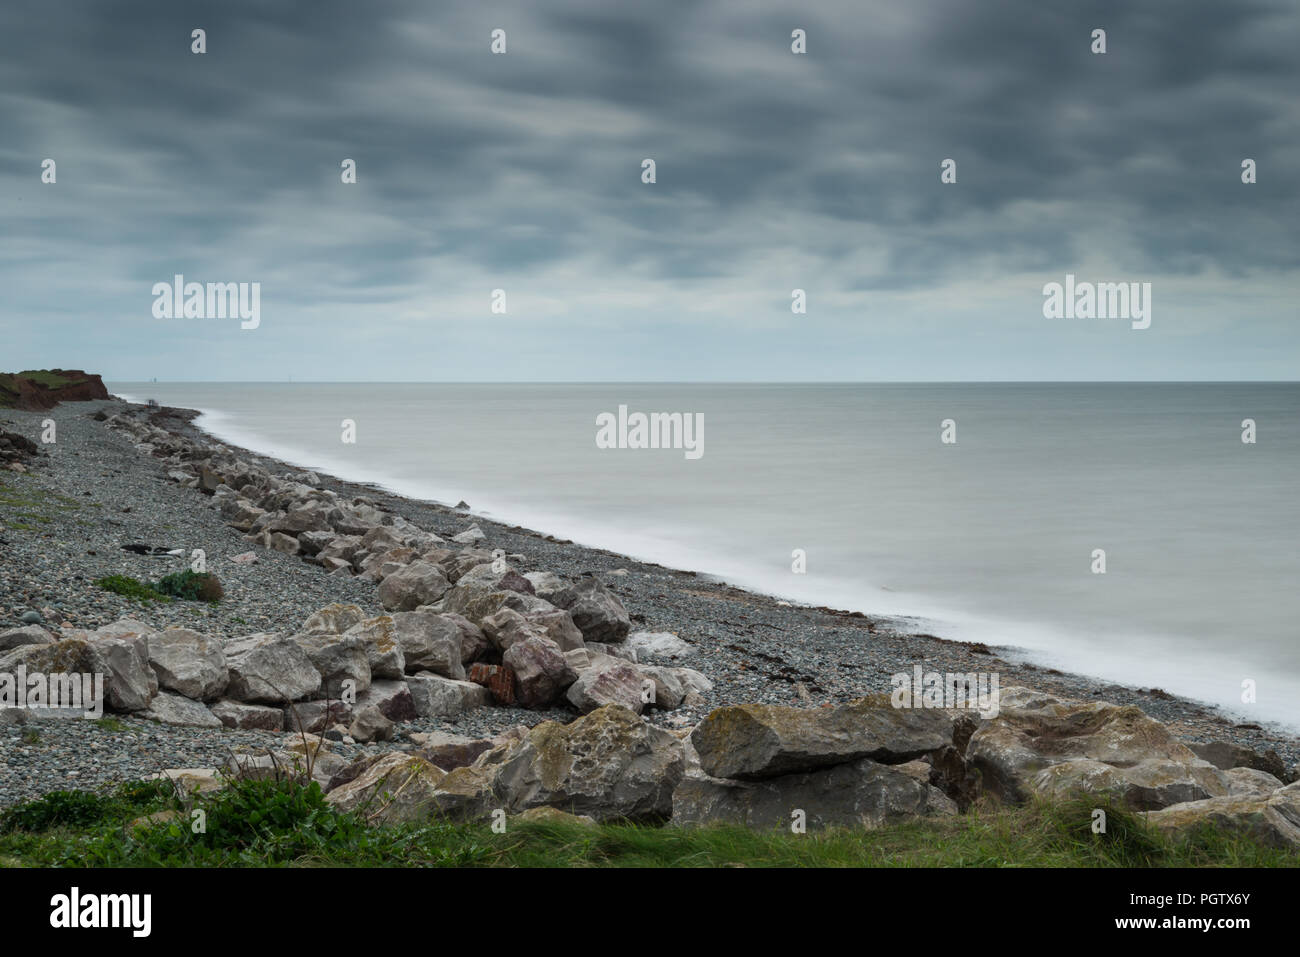 The deserted western shoreline and beach of Walney Island off the Cumbrian coast in summer with long exposure on the sea and shingle beach. - Stock Image